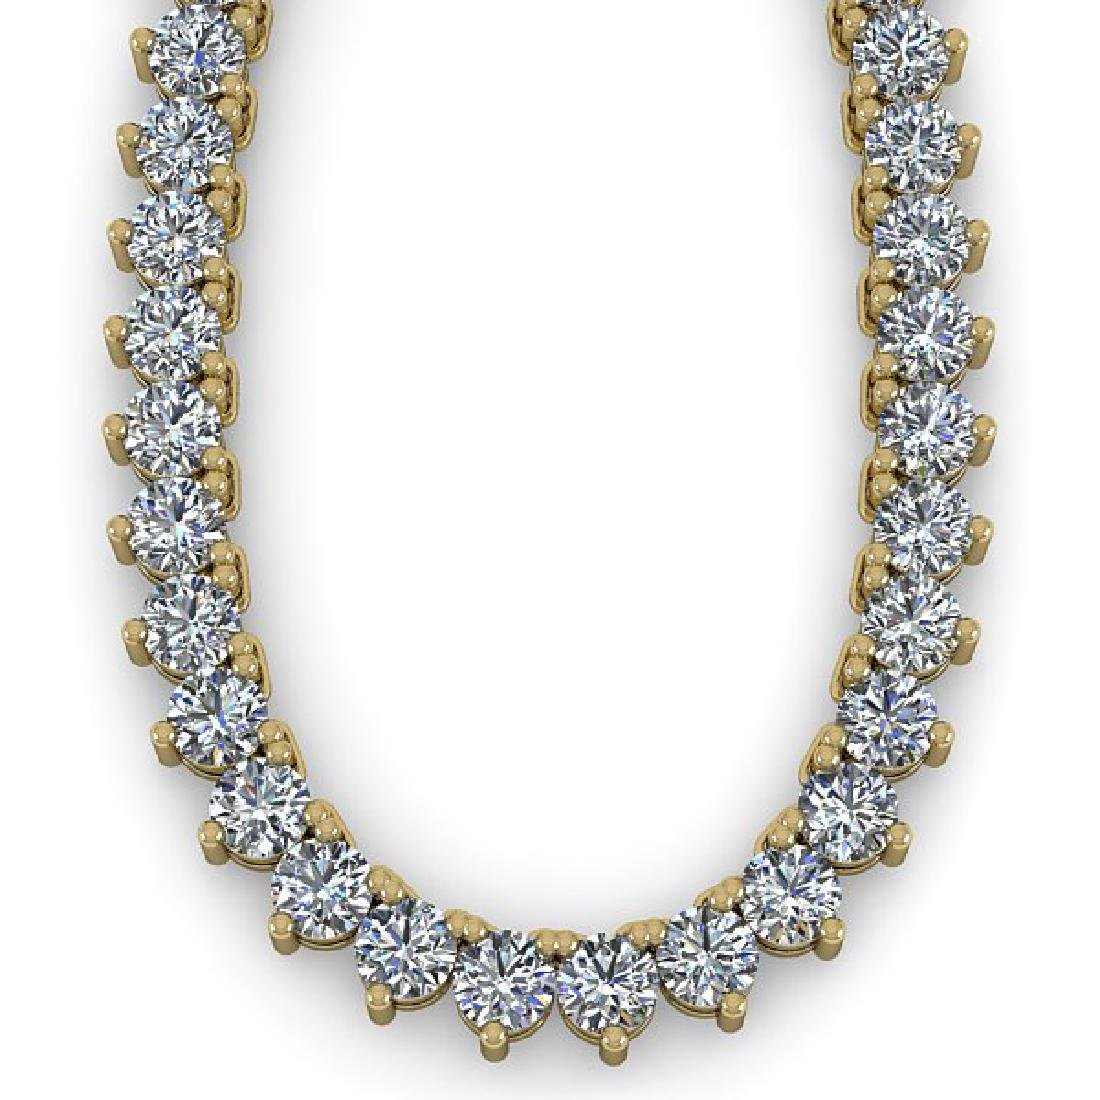 20 CTW Solitaire VS/SI Diamond Necklace 18K Yellow Gold - 2